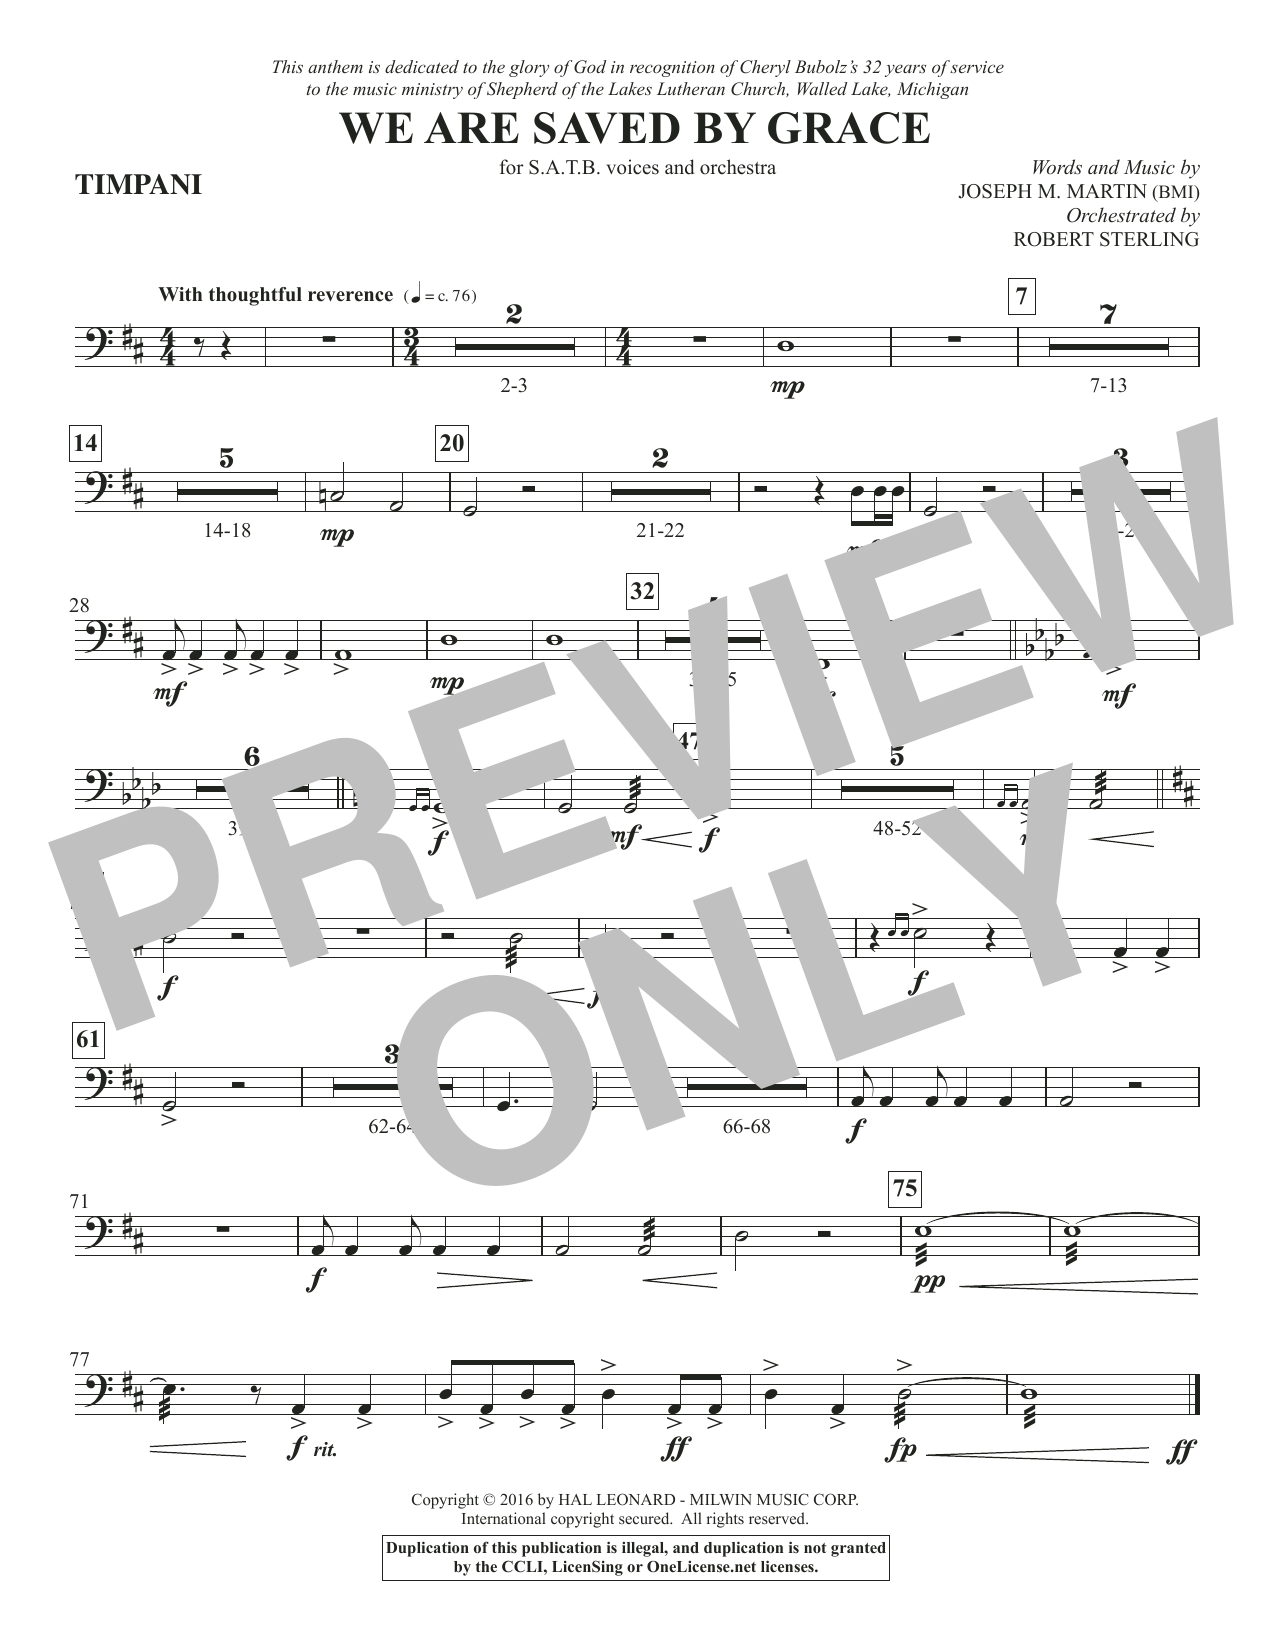 We Are Saved by Grace - Timpani Sheet Music